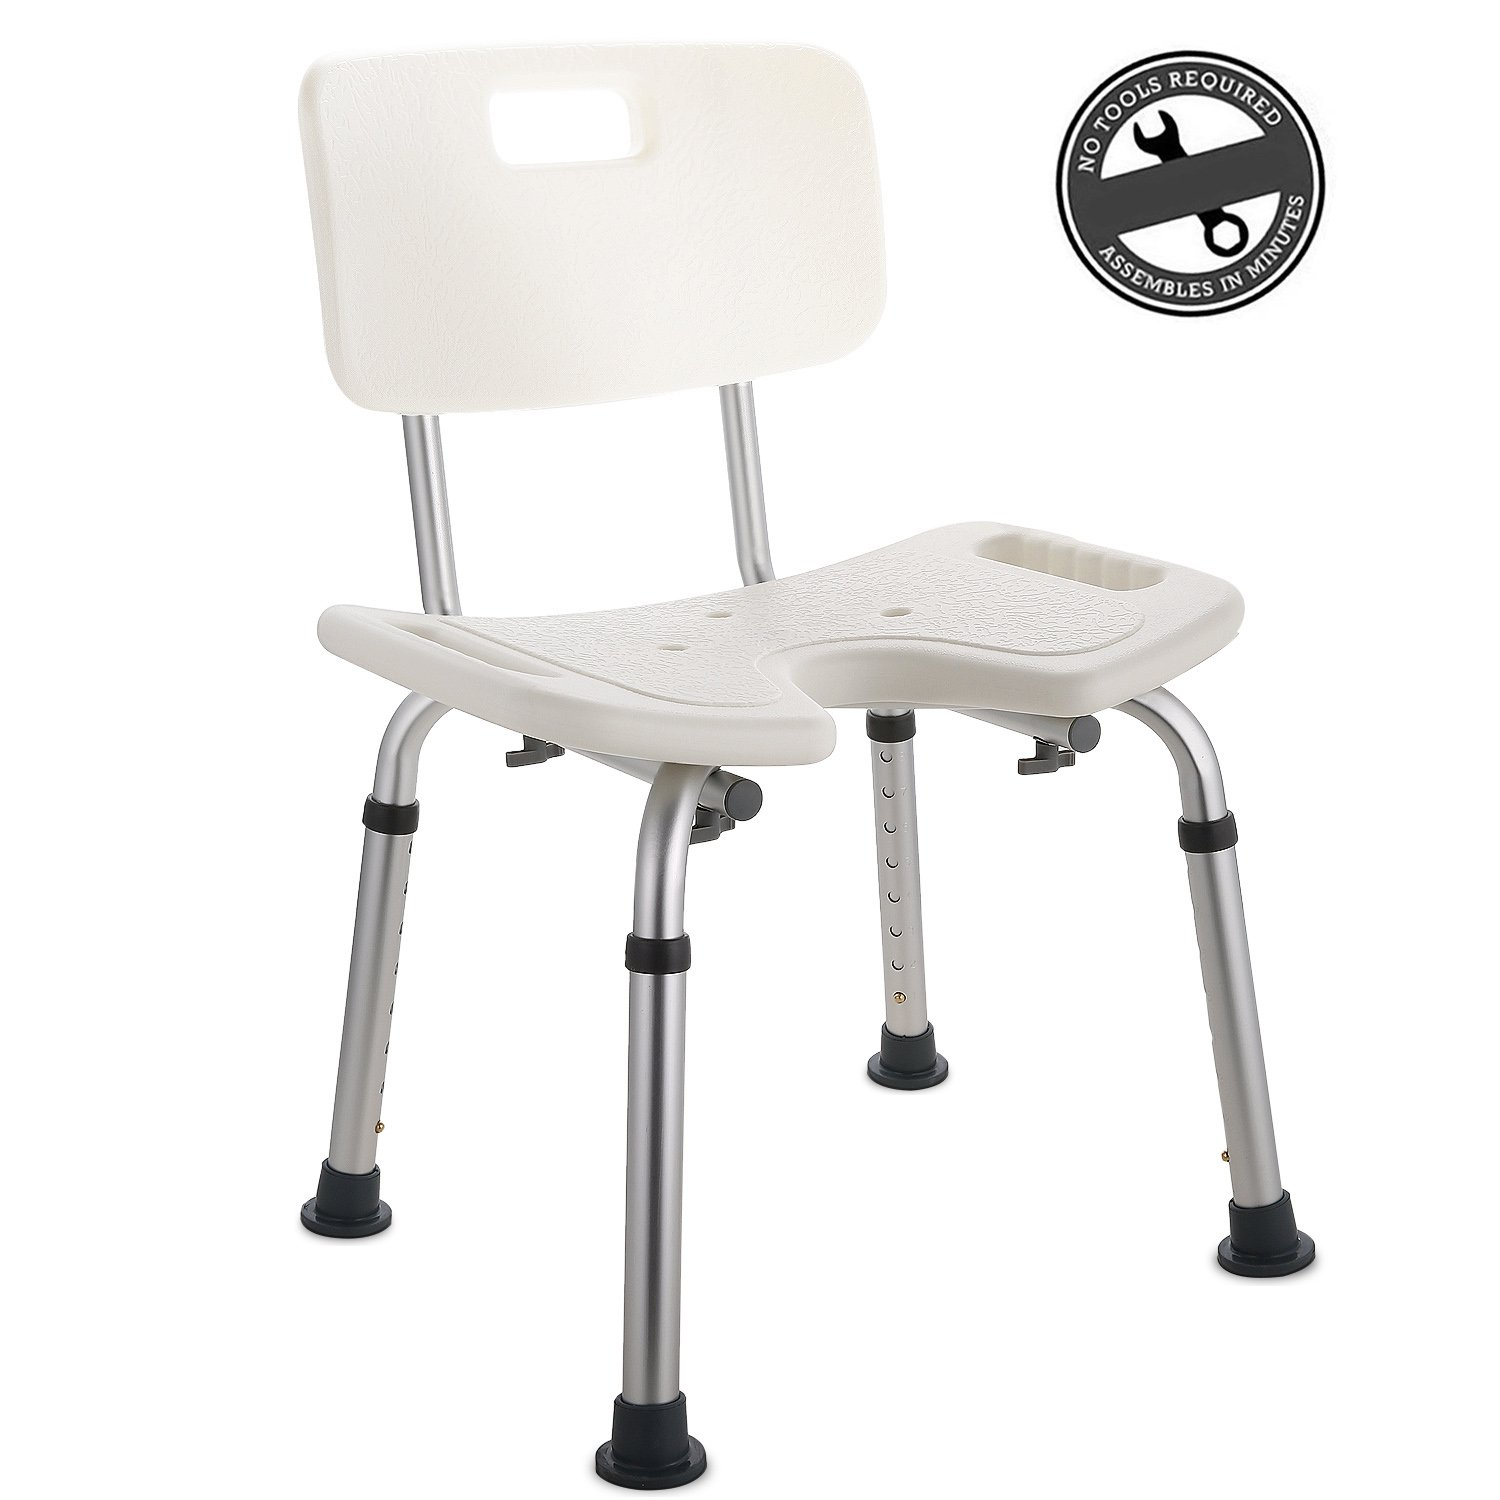 Cheap Handicap Chair For Shower, find Handicap Chair For Shower ...